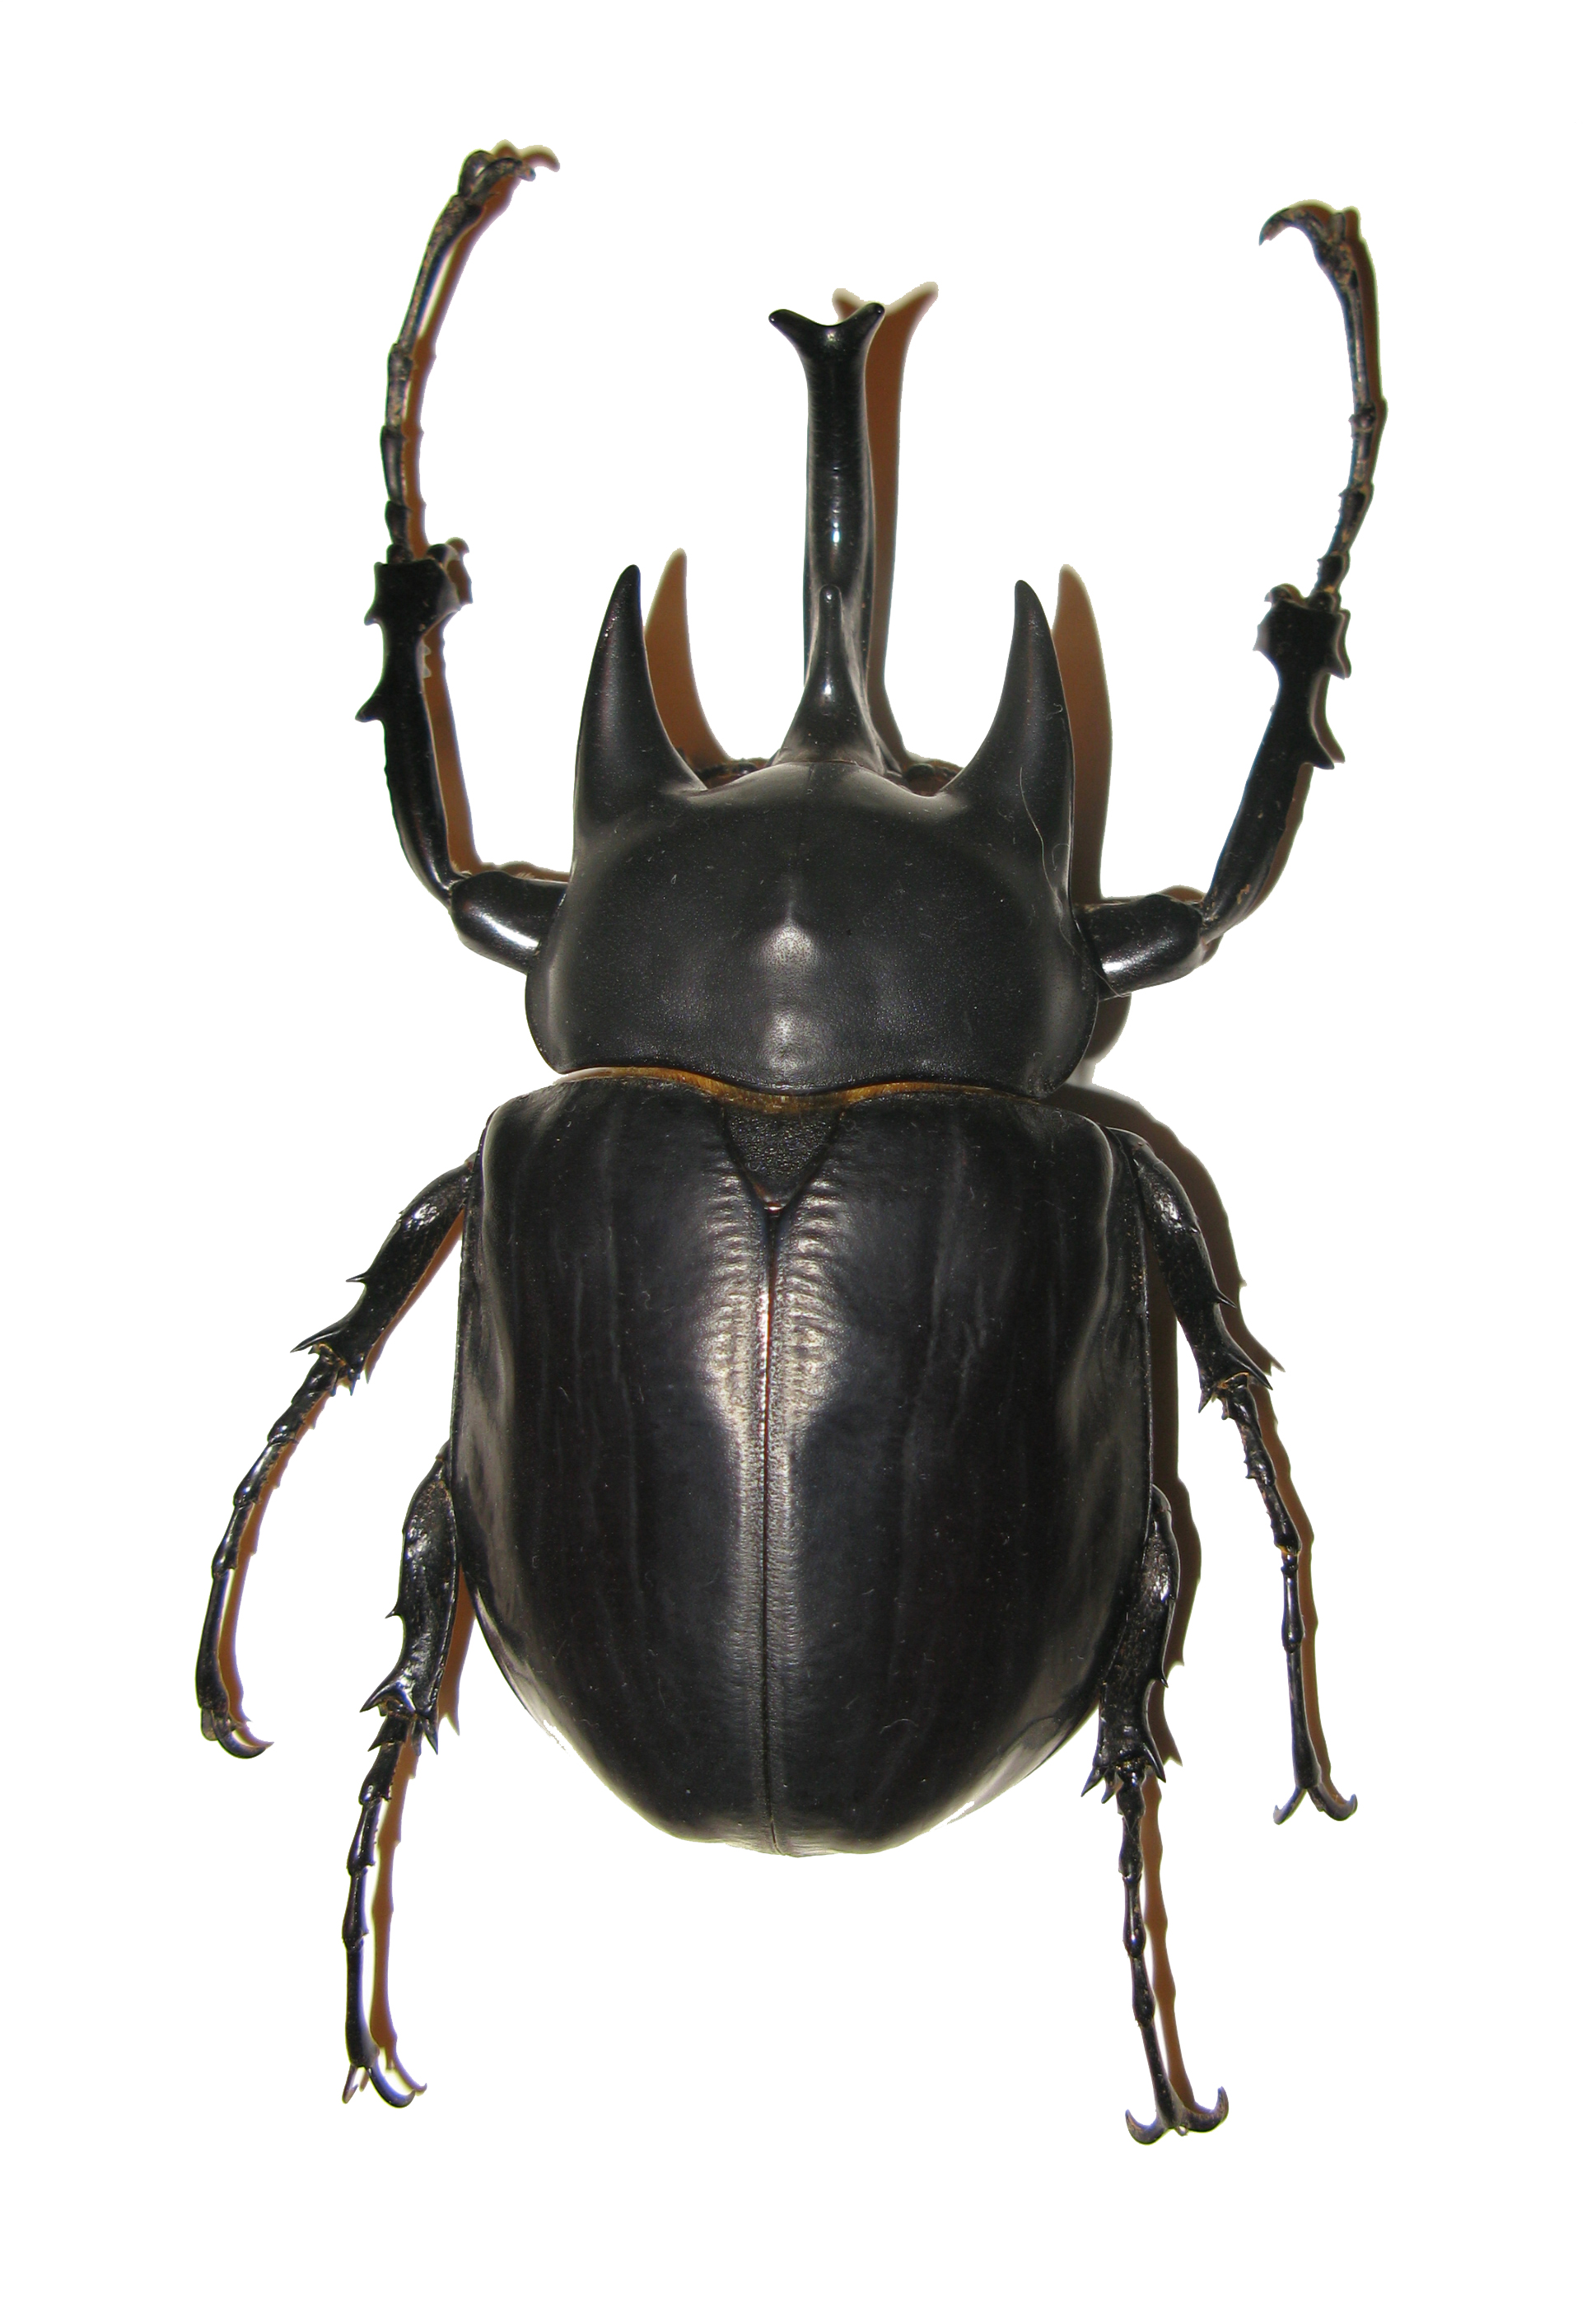 largest insect in history